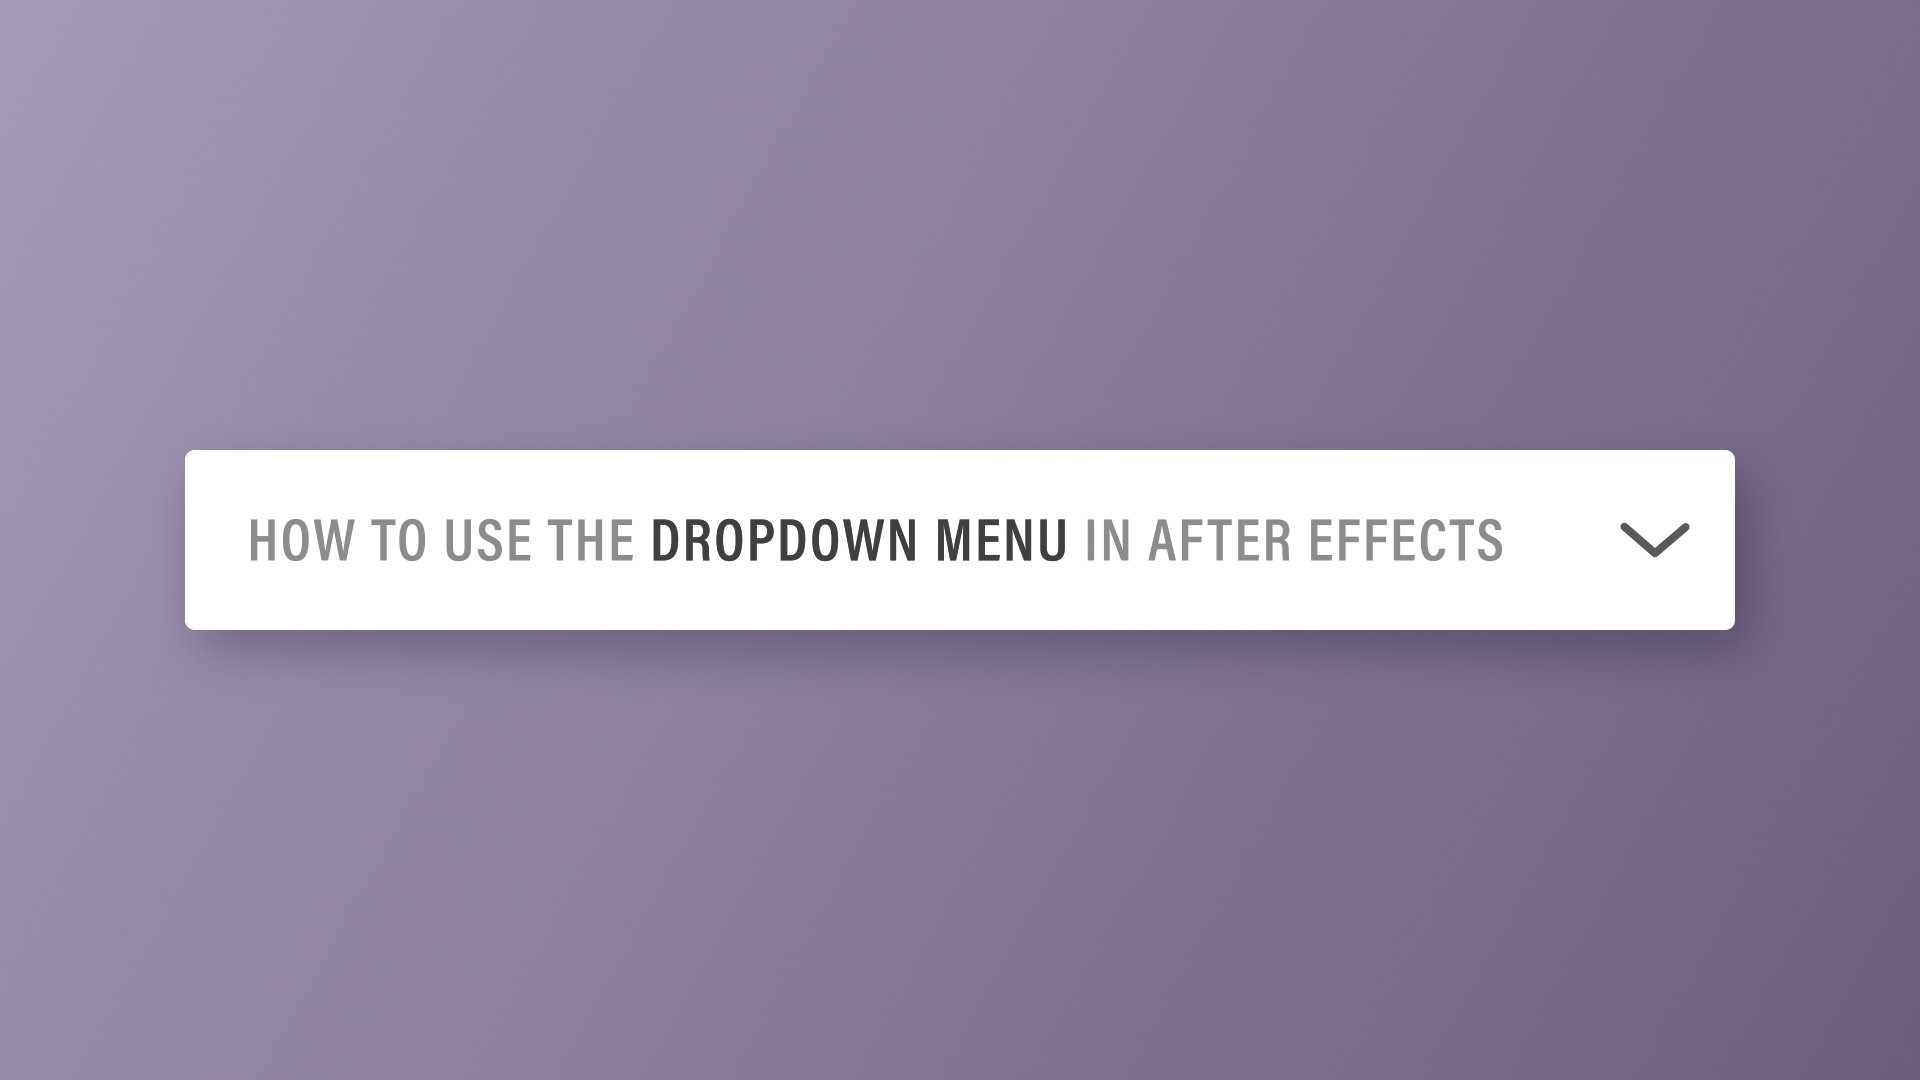 How to Use the Dropdown Menu in After Effects